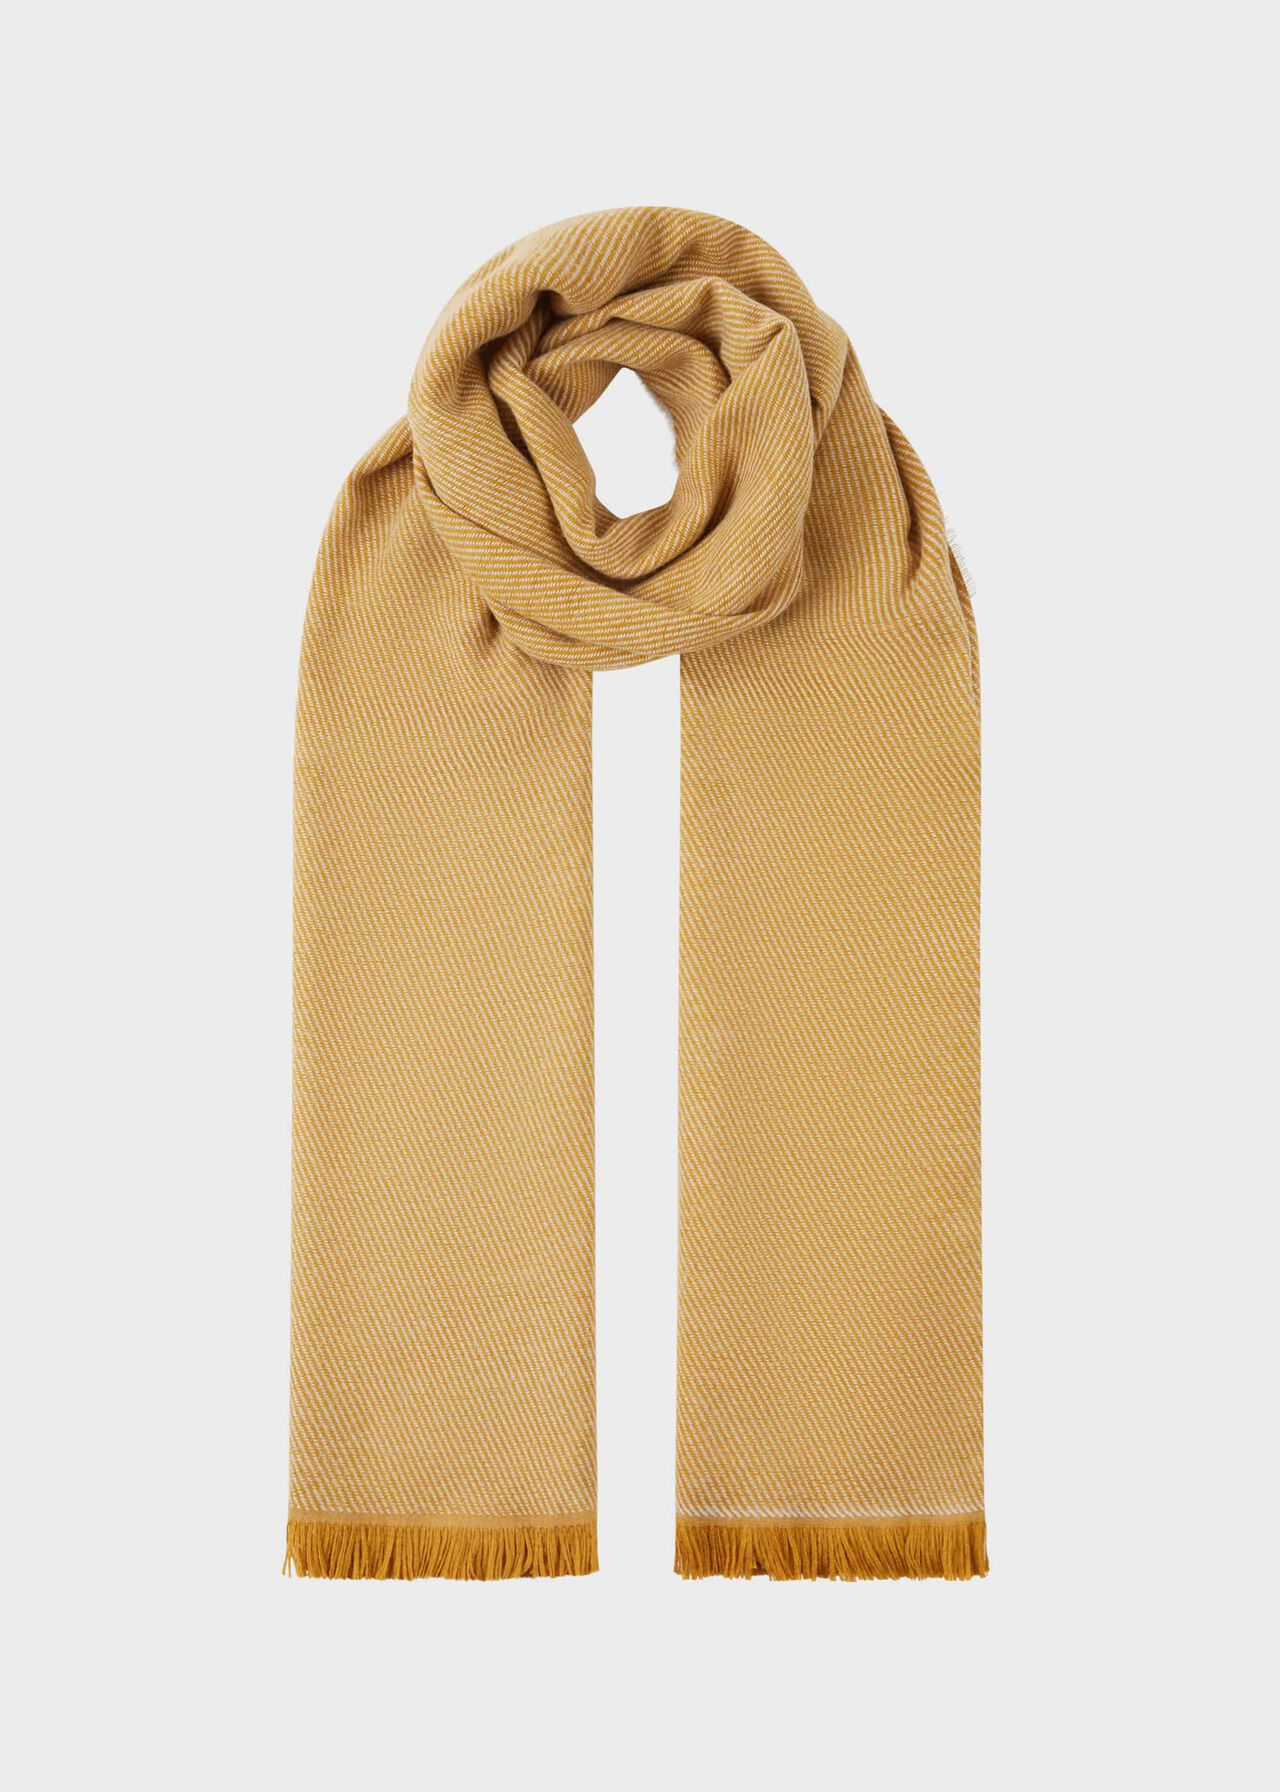 Willow Scarf, Ochre, hi-res